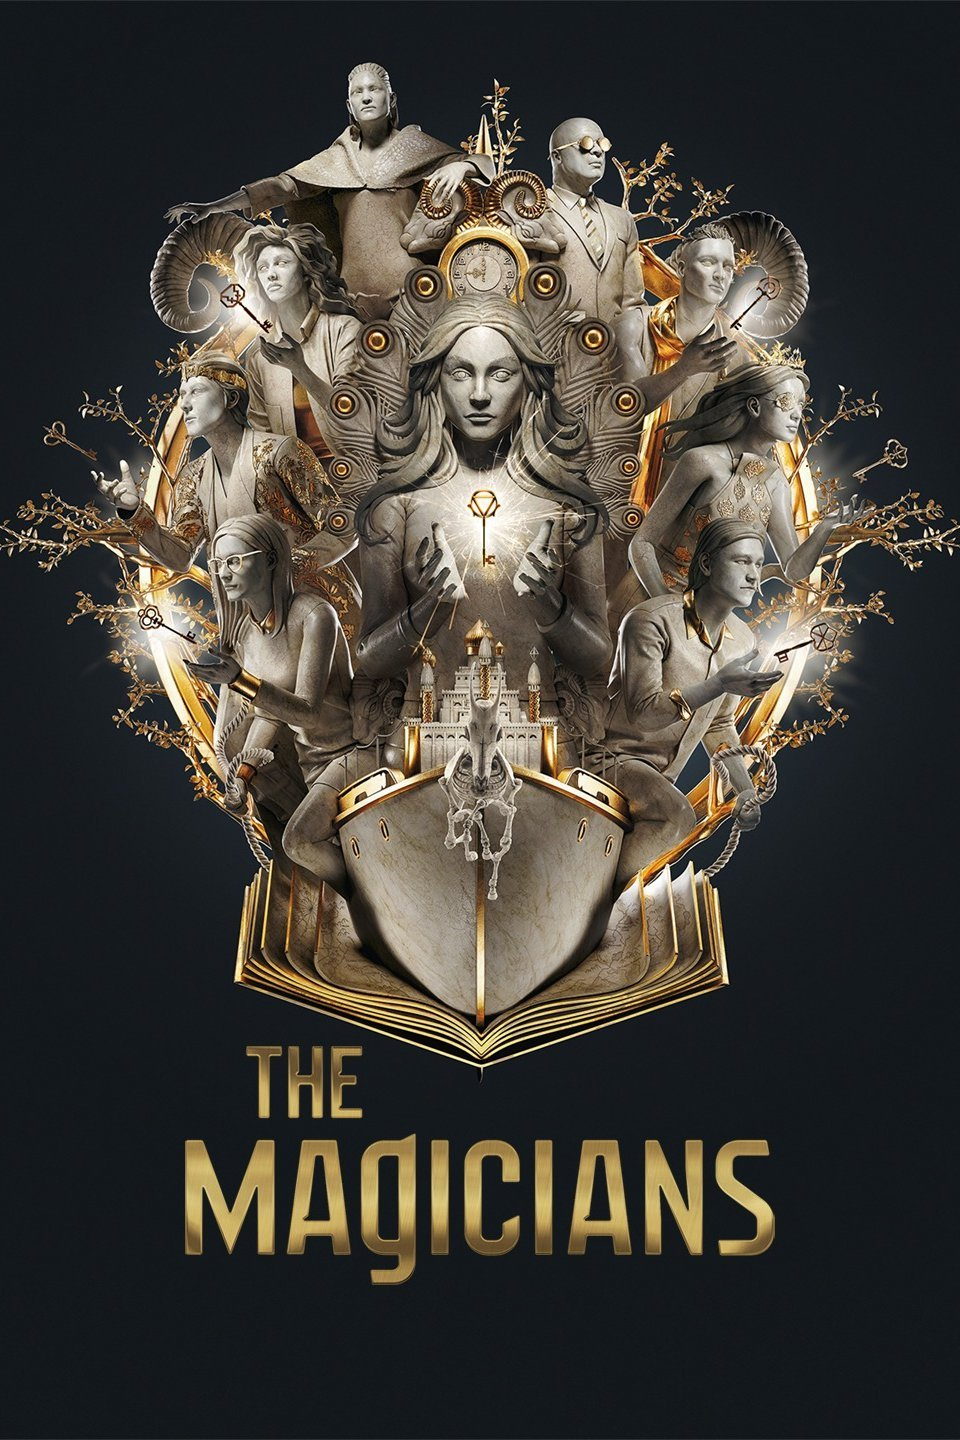 The Magicians Season 3 Episode 10 Download WEBRip